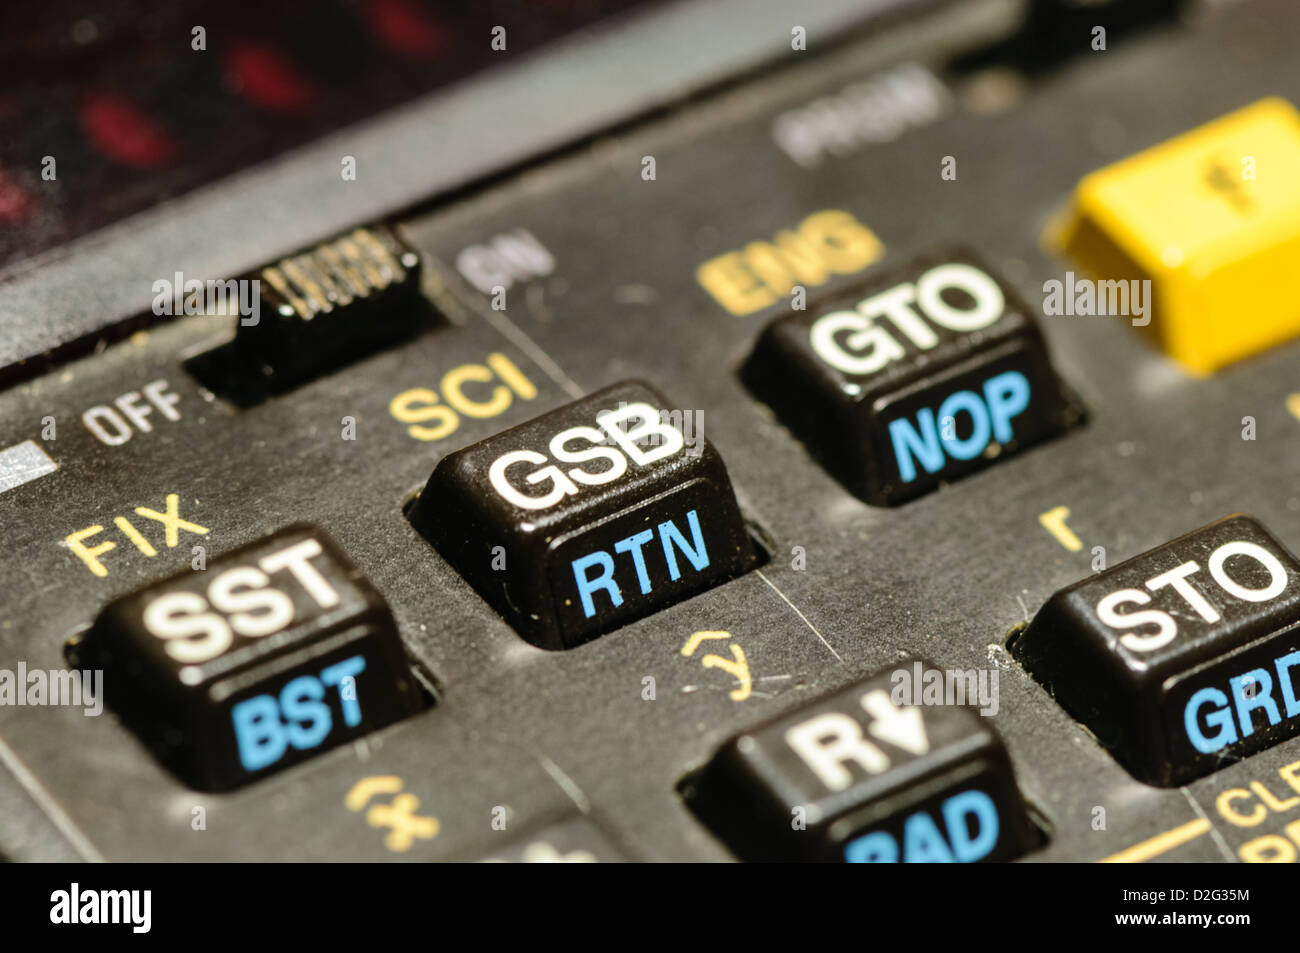 Scientific Calculator Stock Photos Circuitry Of An Electronic Royalty Free Photography Hewlett Packard Hp 33e Programmable From 1978 Which Uses Reverse Polish Notation